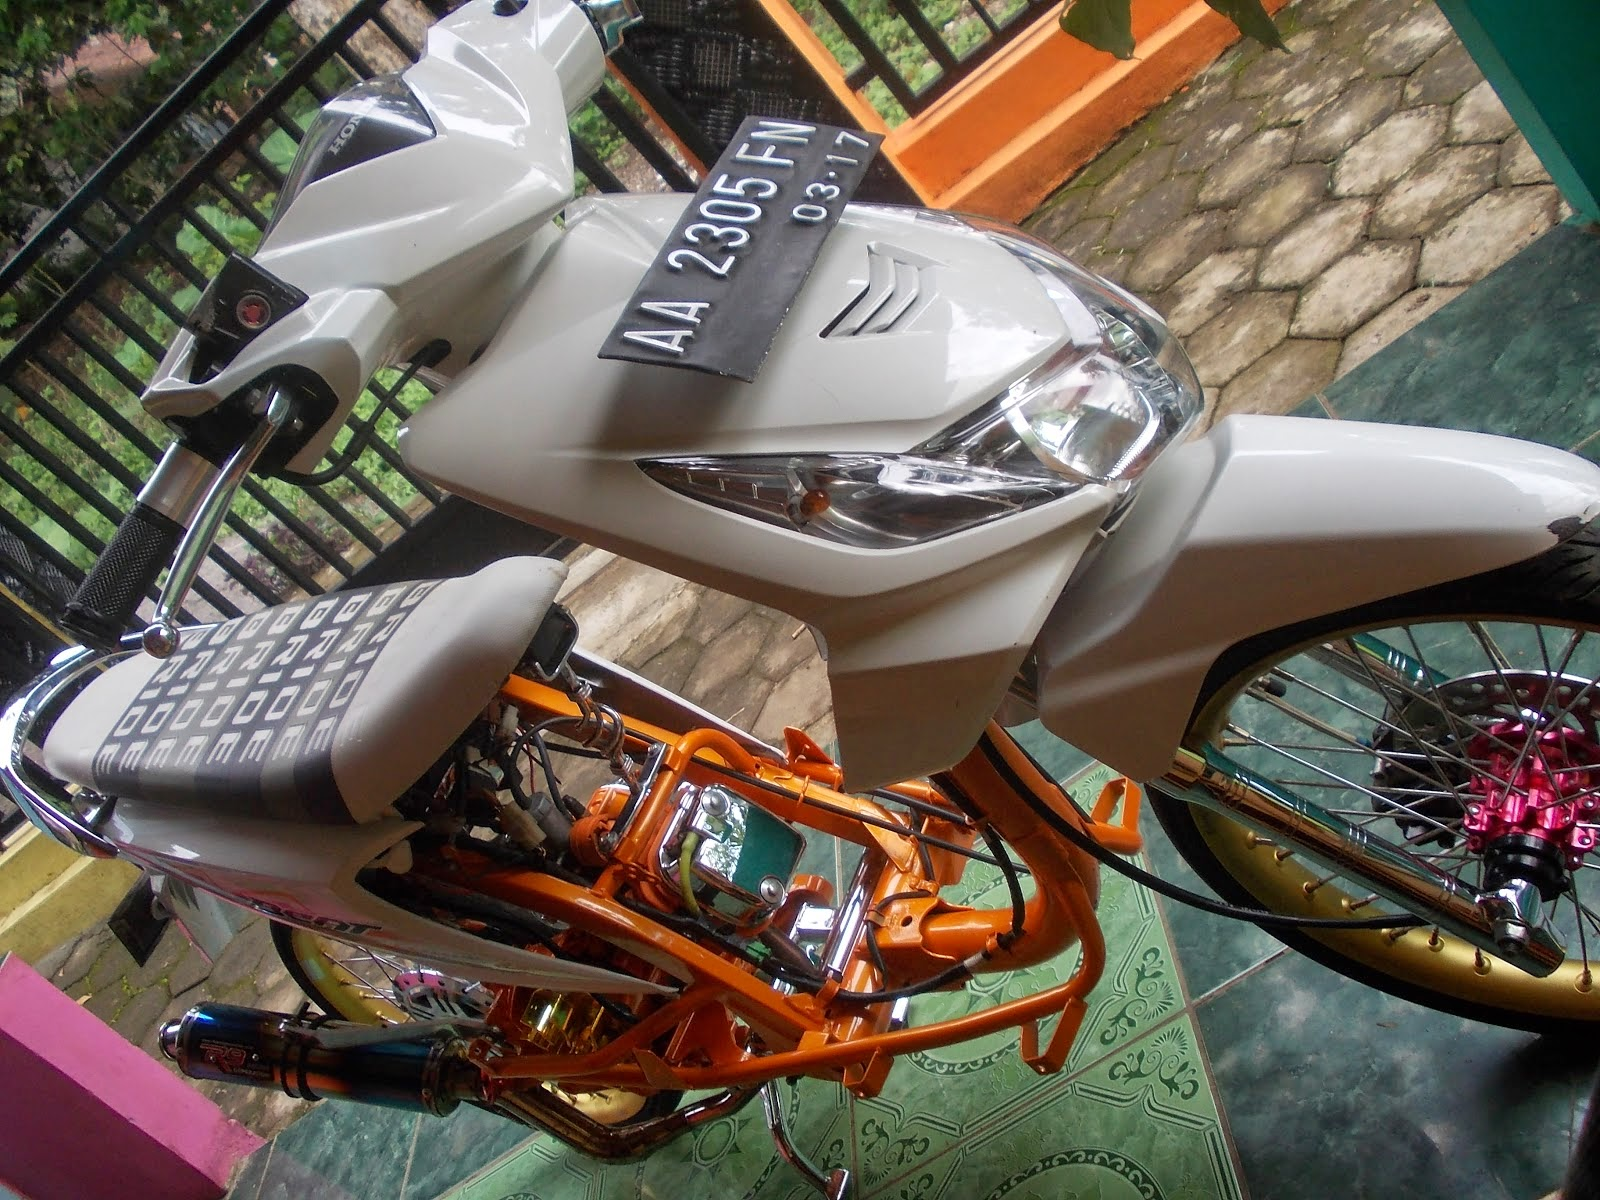 Modifikasi Honda Beat Putih